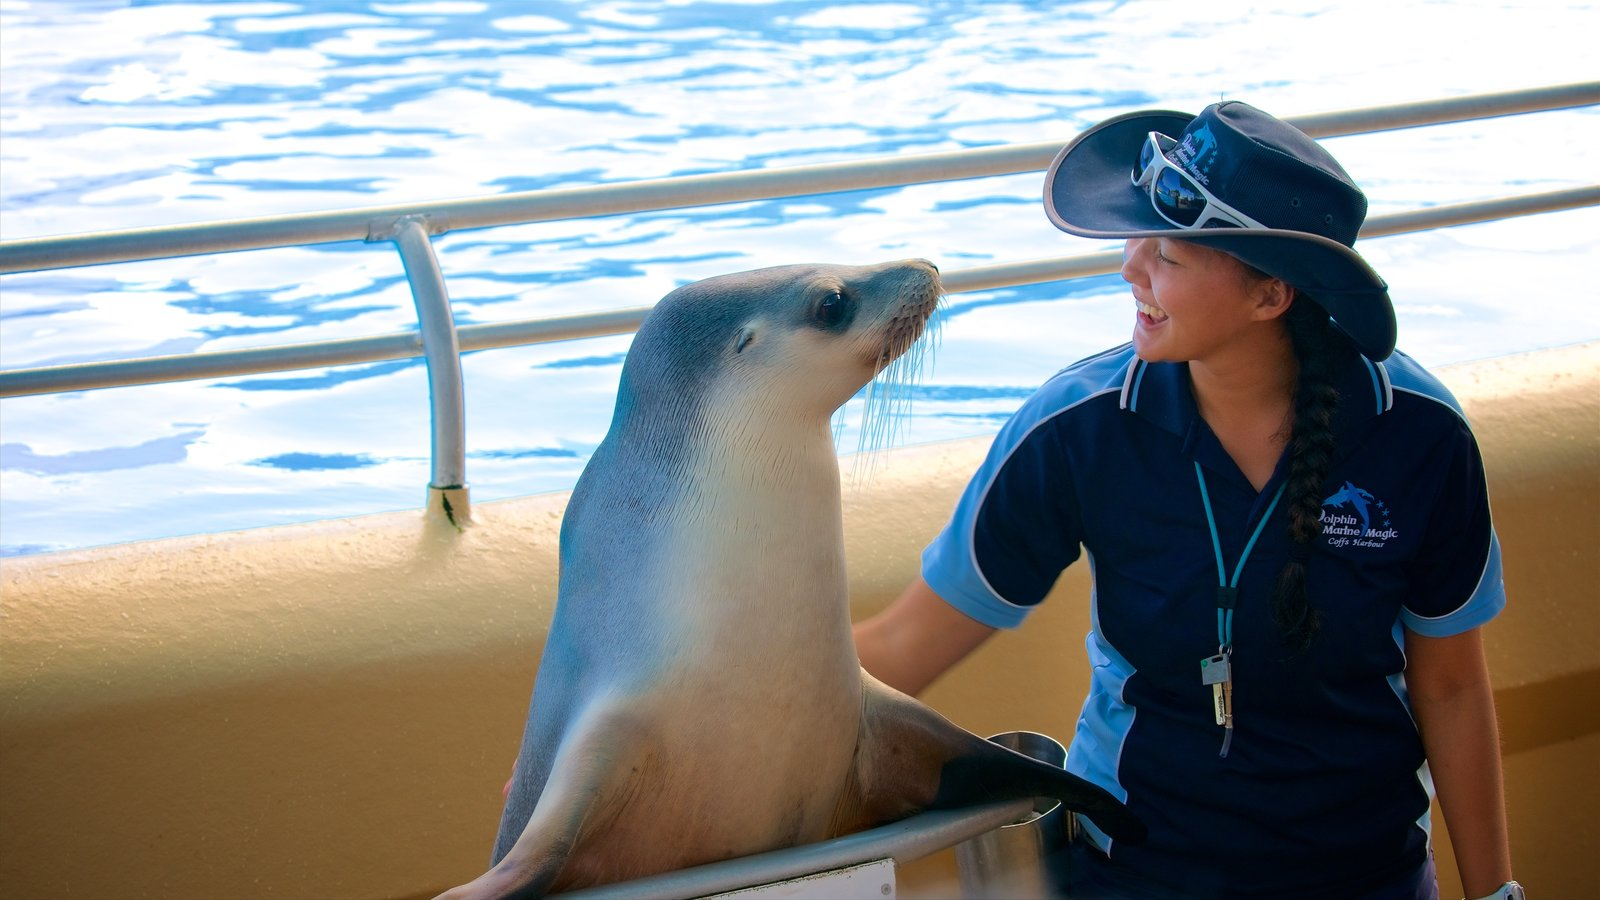 Dolphin Marine Magic featuring cuddly or friendly animals as well as an individual femail